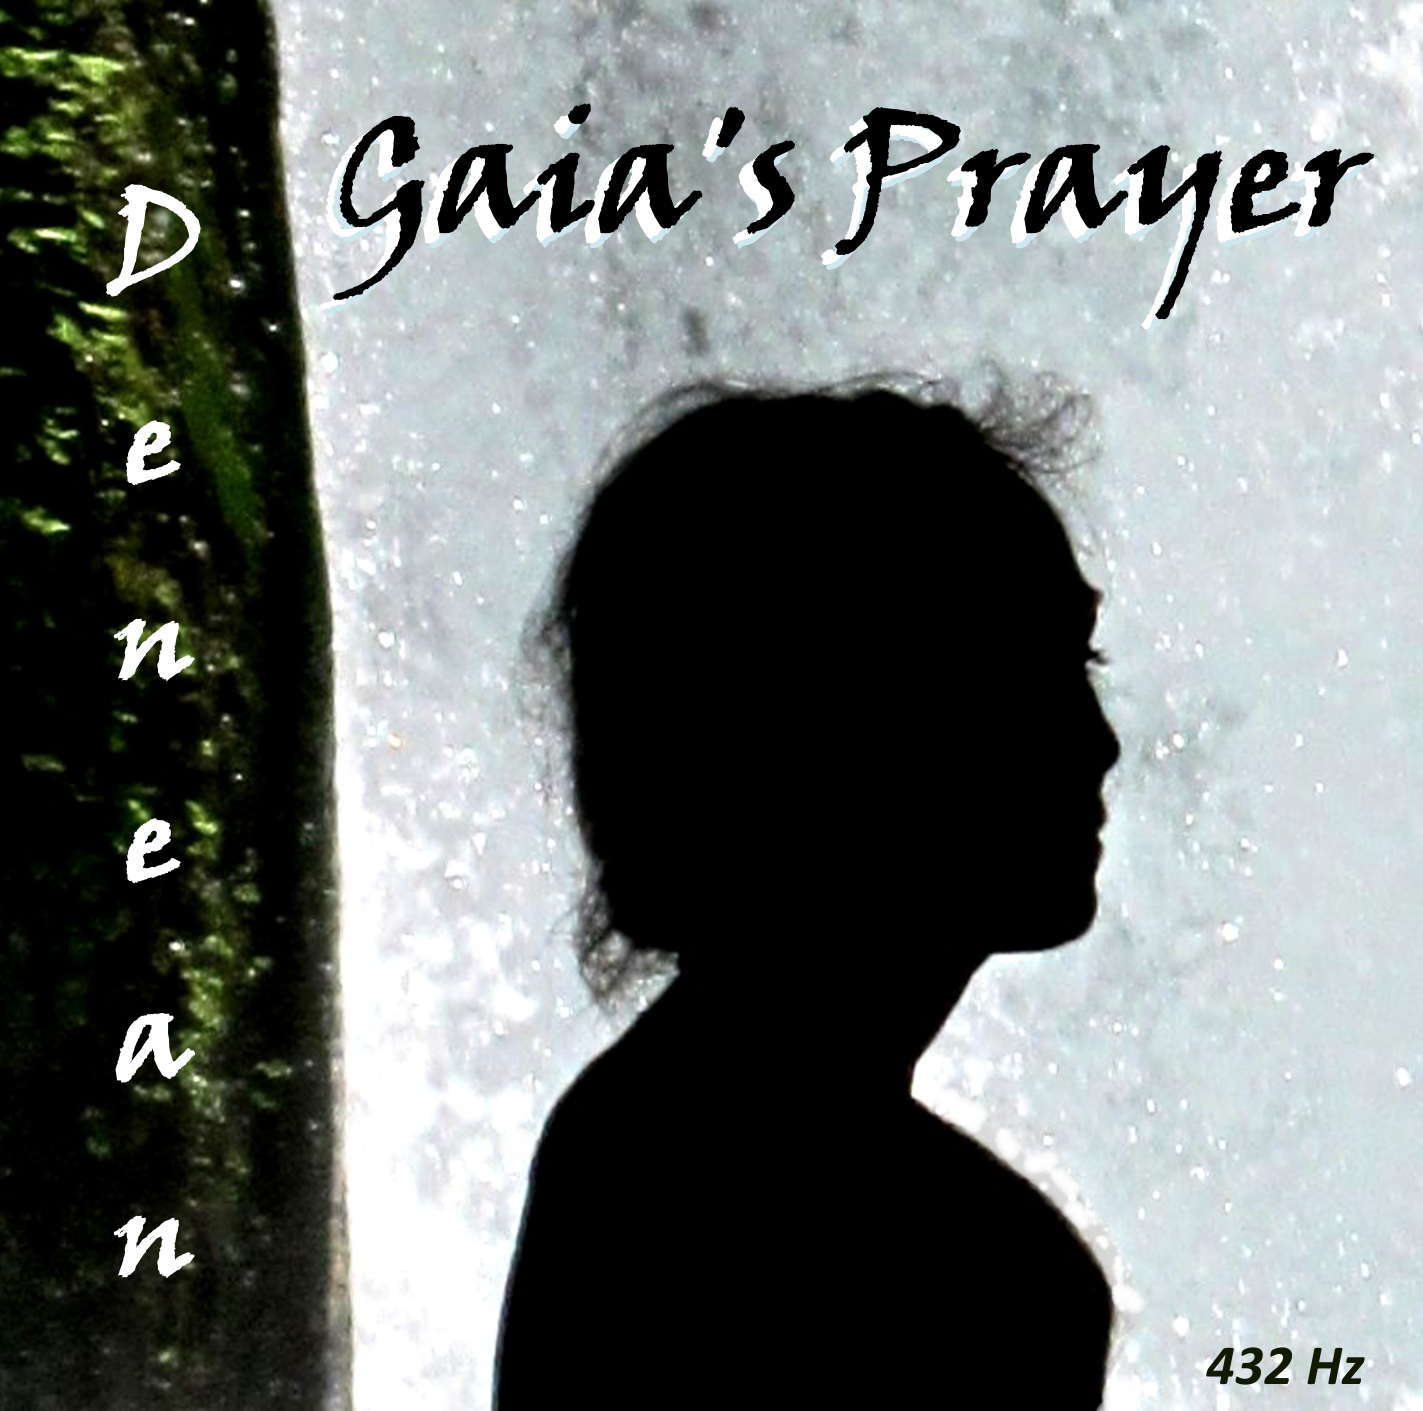 Gaia's Prayer Album Cover